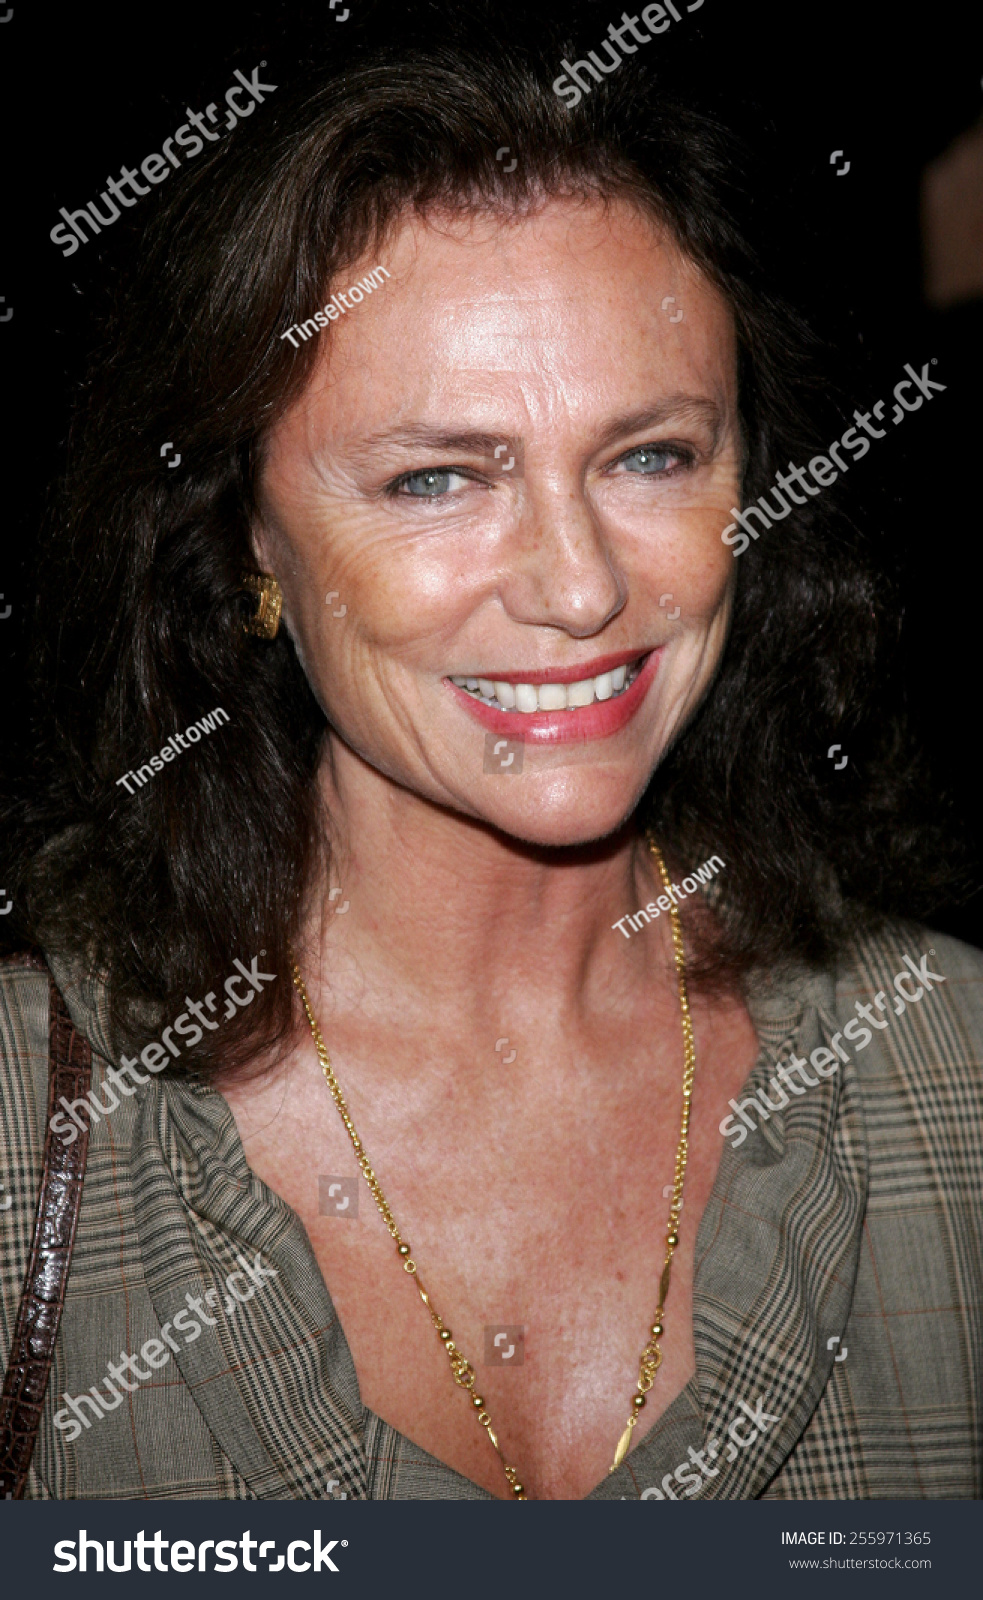 Jacqueline Bisset At The Los Angeles Premiere Of Queen Held Jacquelle Eyebrow Scissors Academy Motion Picture Arts And Sciences In Beverly Hills Usa On October 3